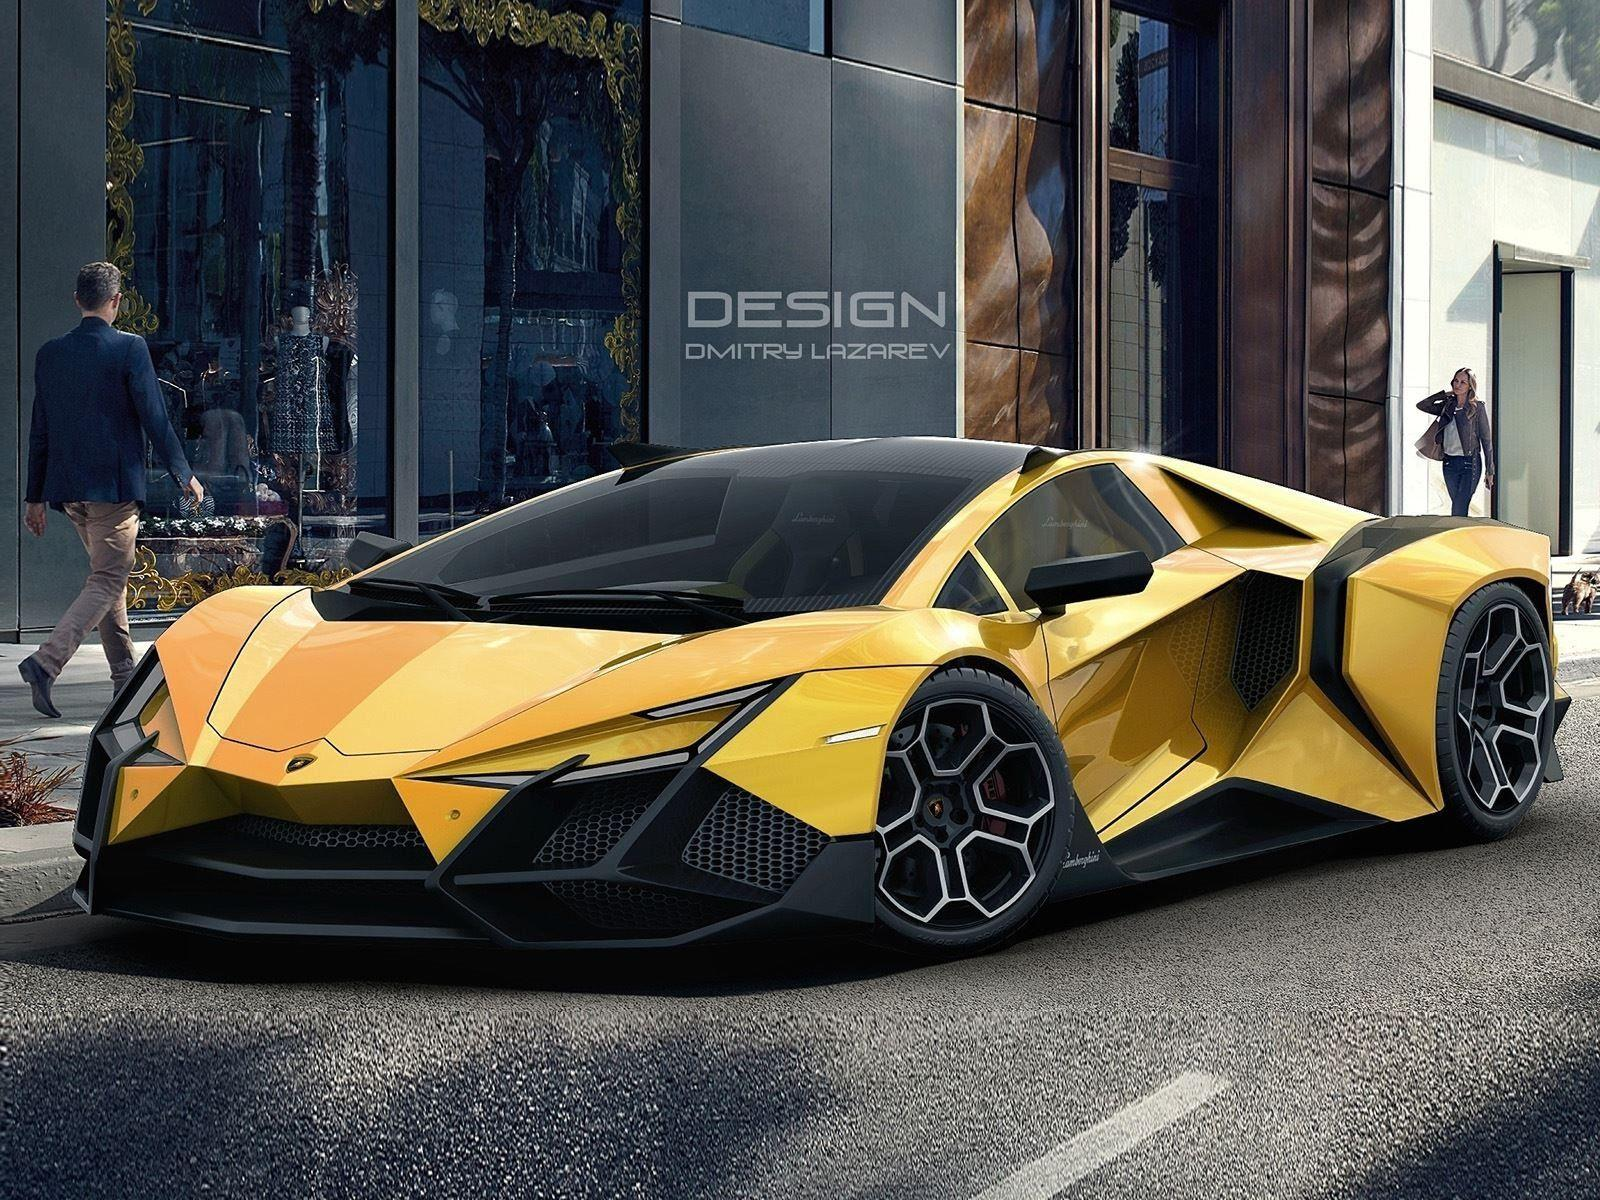 Meet The Lamborghini Madman: It's Crazy And We Love It - CarBuzz